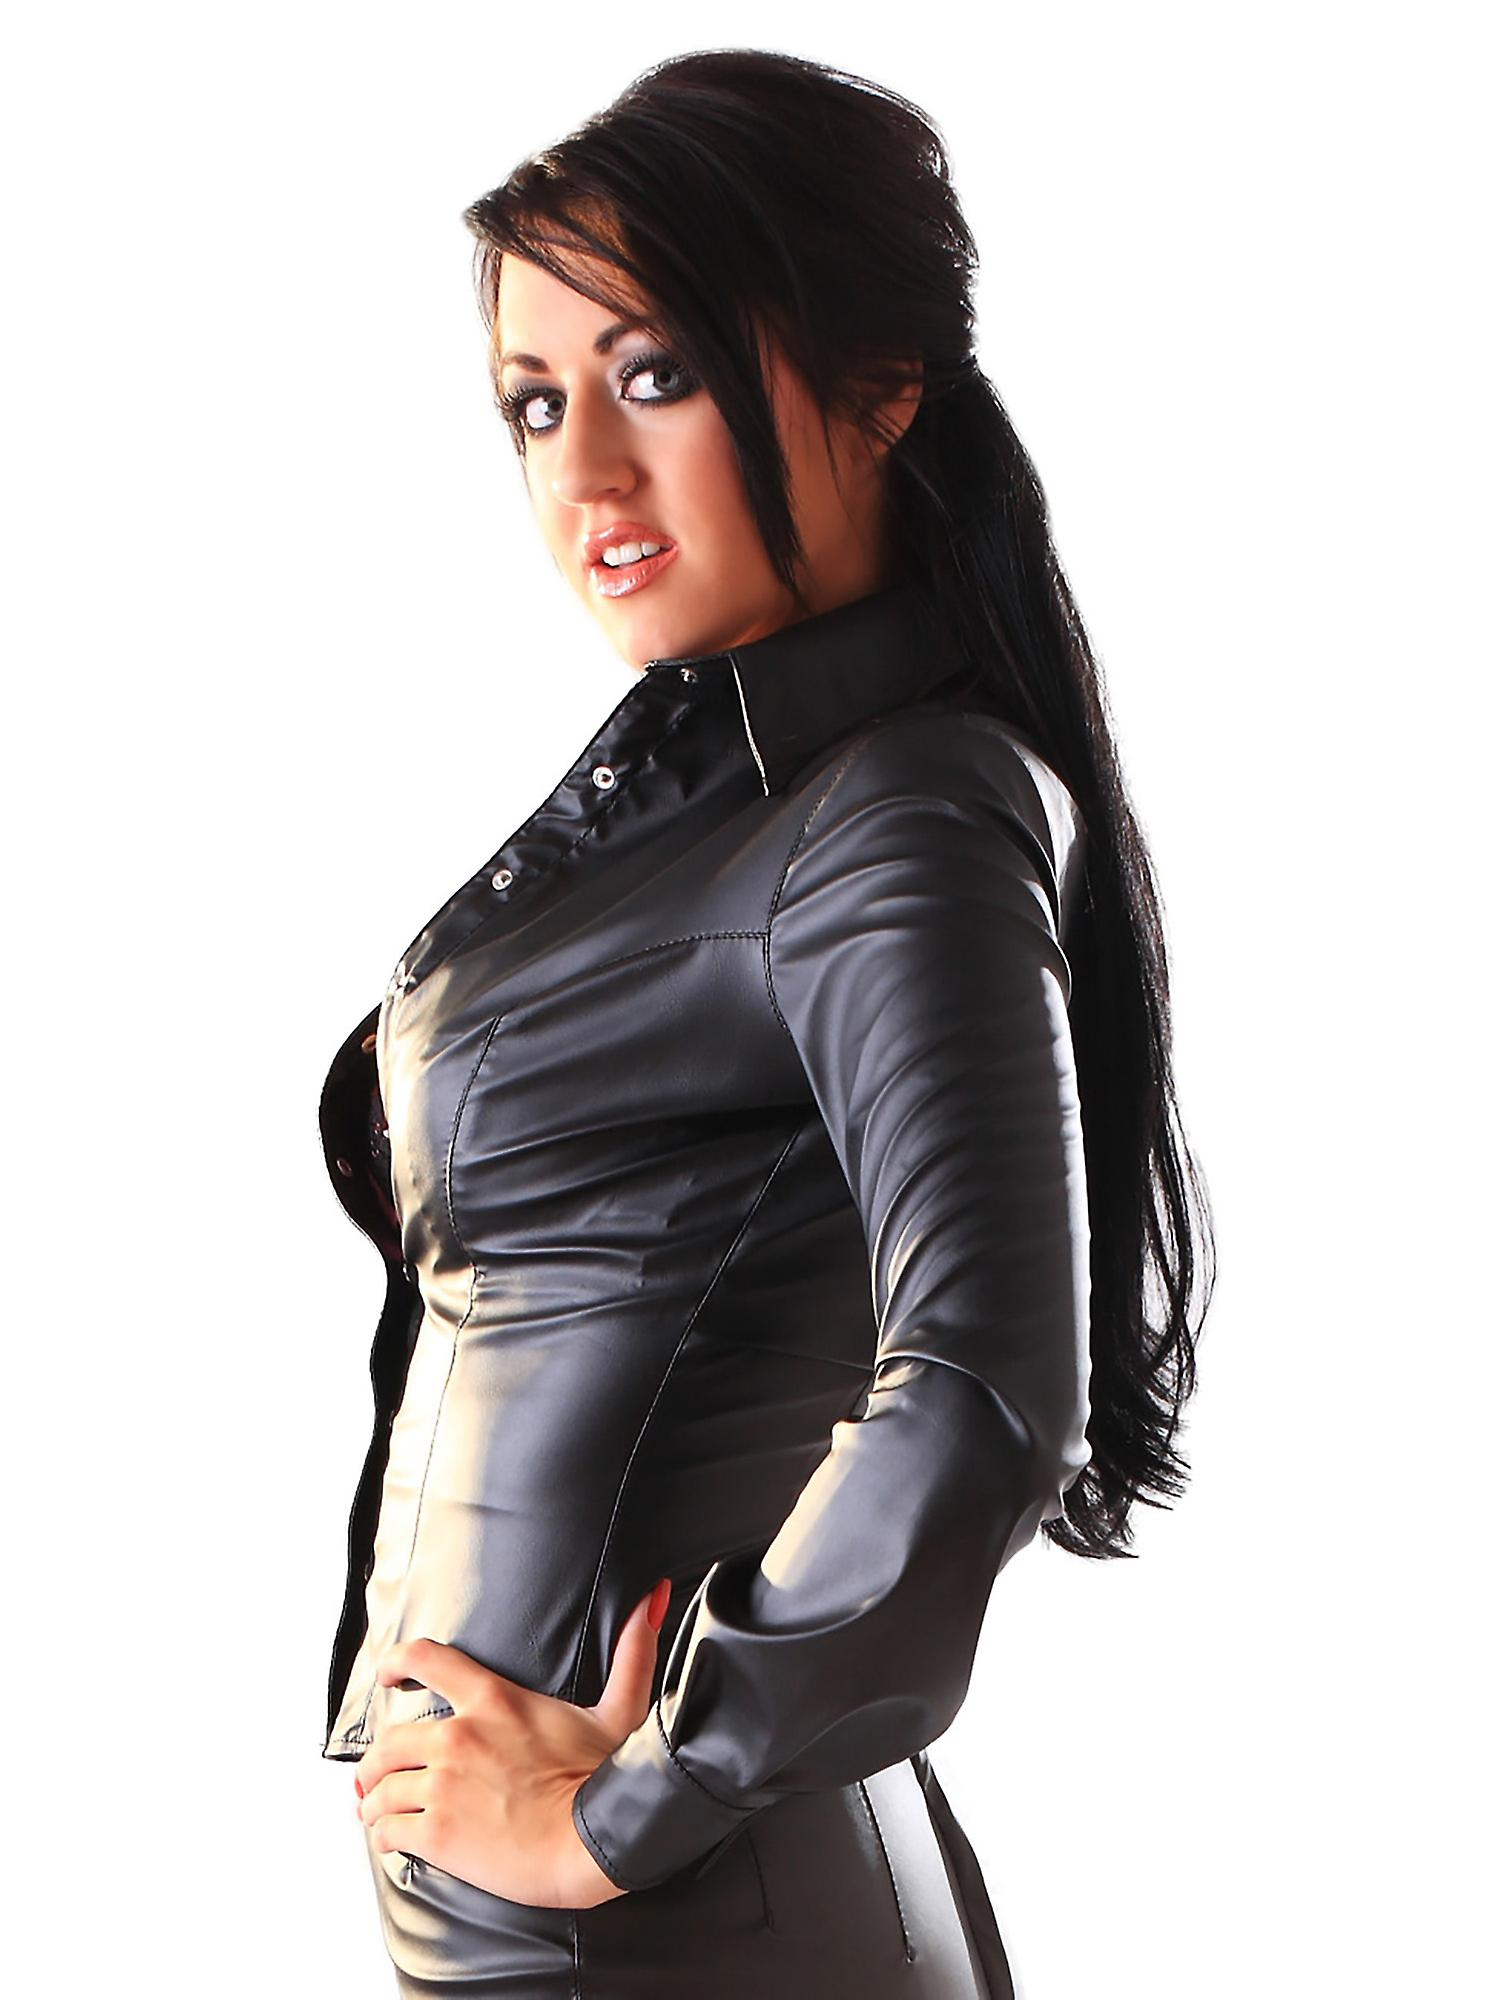 Honour Women's Sexy Shirt in Leather Look Black Shaped Hem Top Trimmings